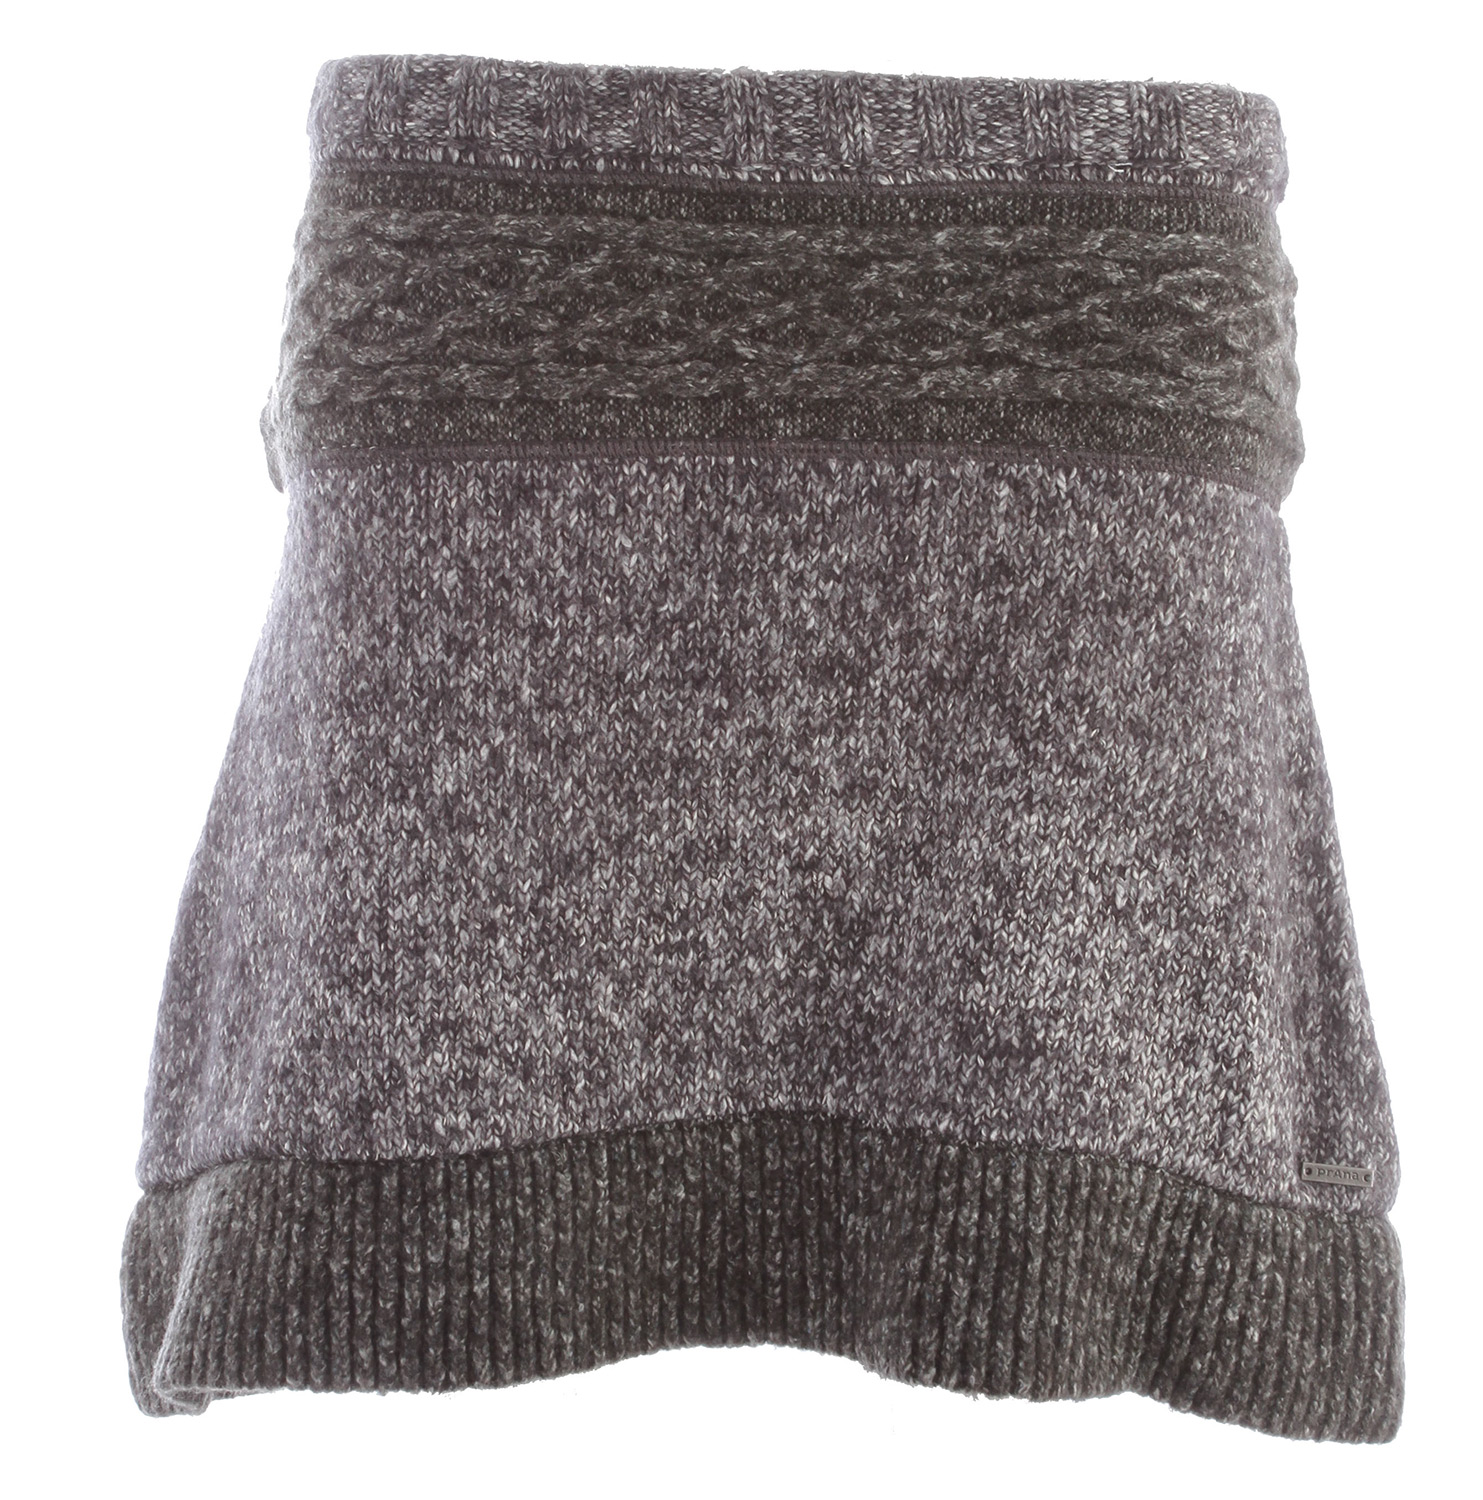 "Key Features of the Prana Rena Skirt: 55 cotton/34 acrylic/10 polyester/1 spandex Multiyarn sweater skirt Rib waistband and ruffle hem Tonal intarsia pattern at waist in contrast textured yarn 17.75"" outseam - $48.95"